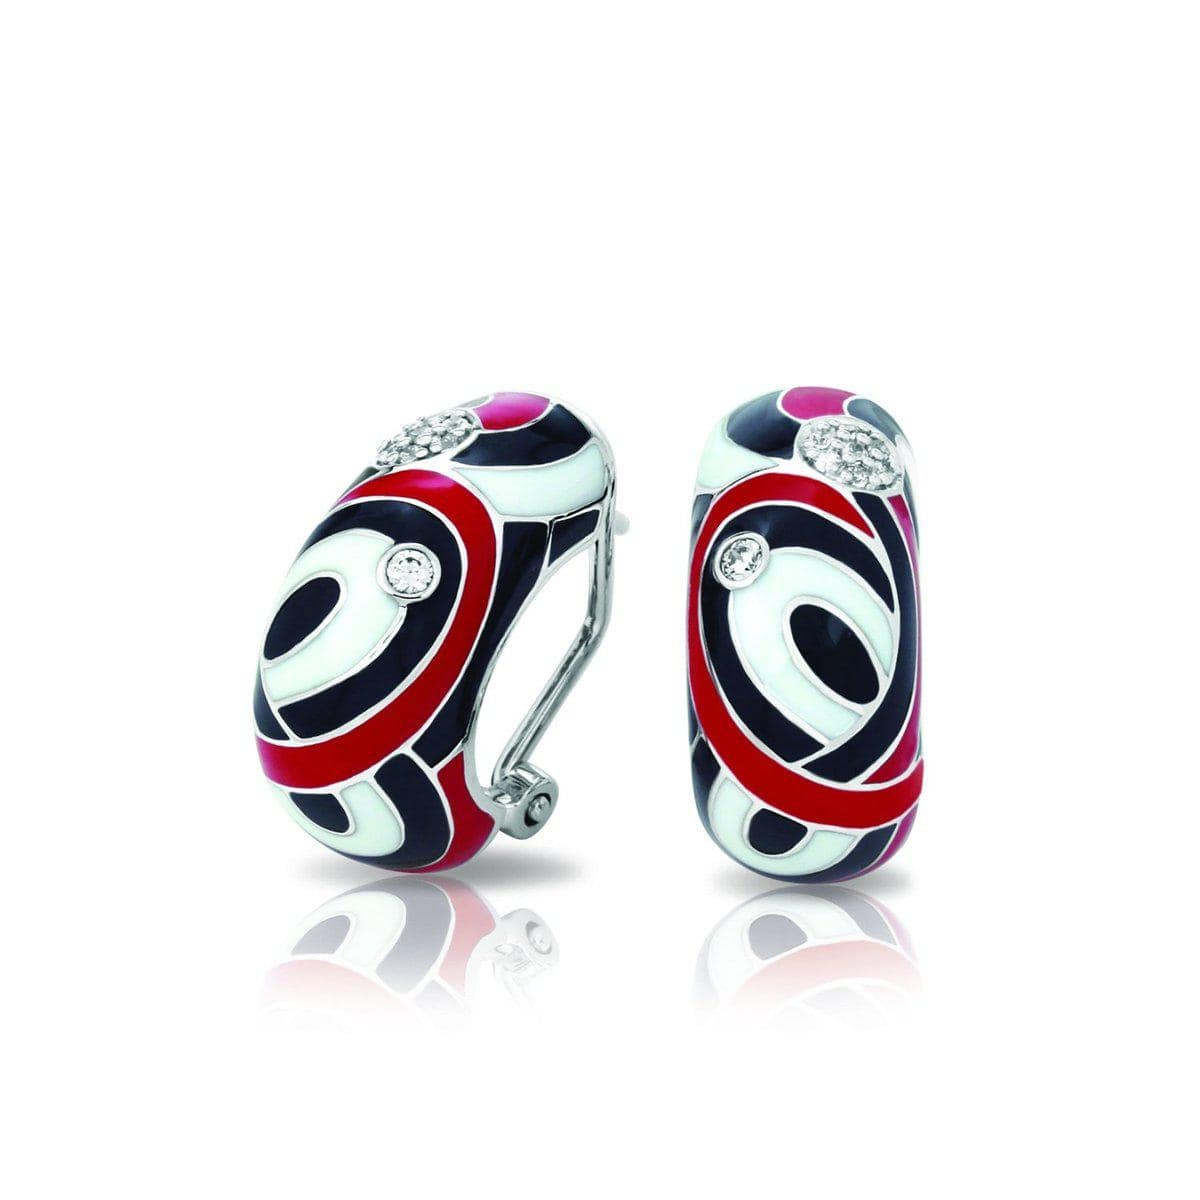 Vortice Black and Red Earrings-Belle Etoile-Renee Taylor Gallery